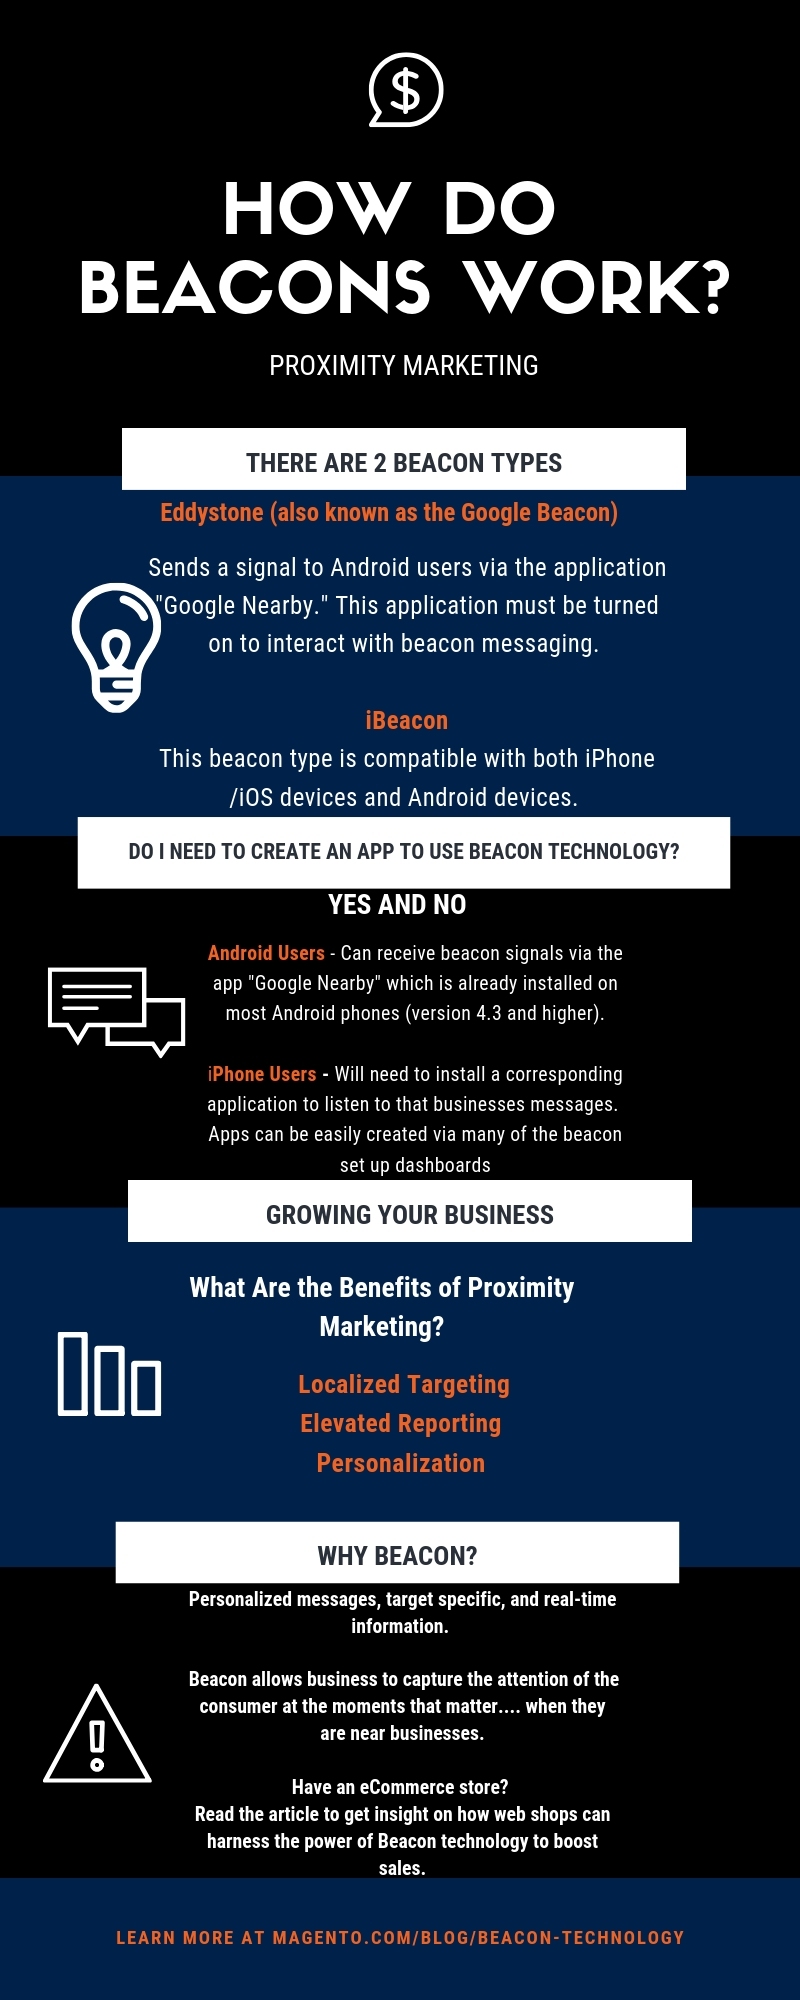 Beacon Technology Infographic